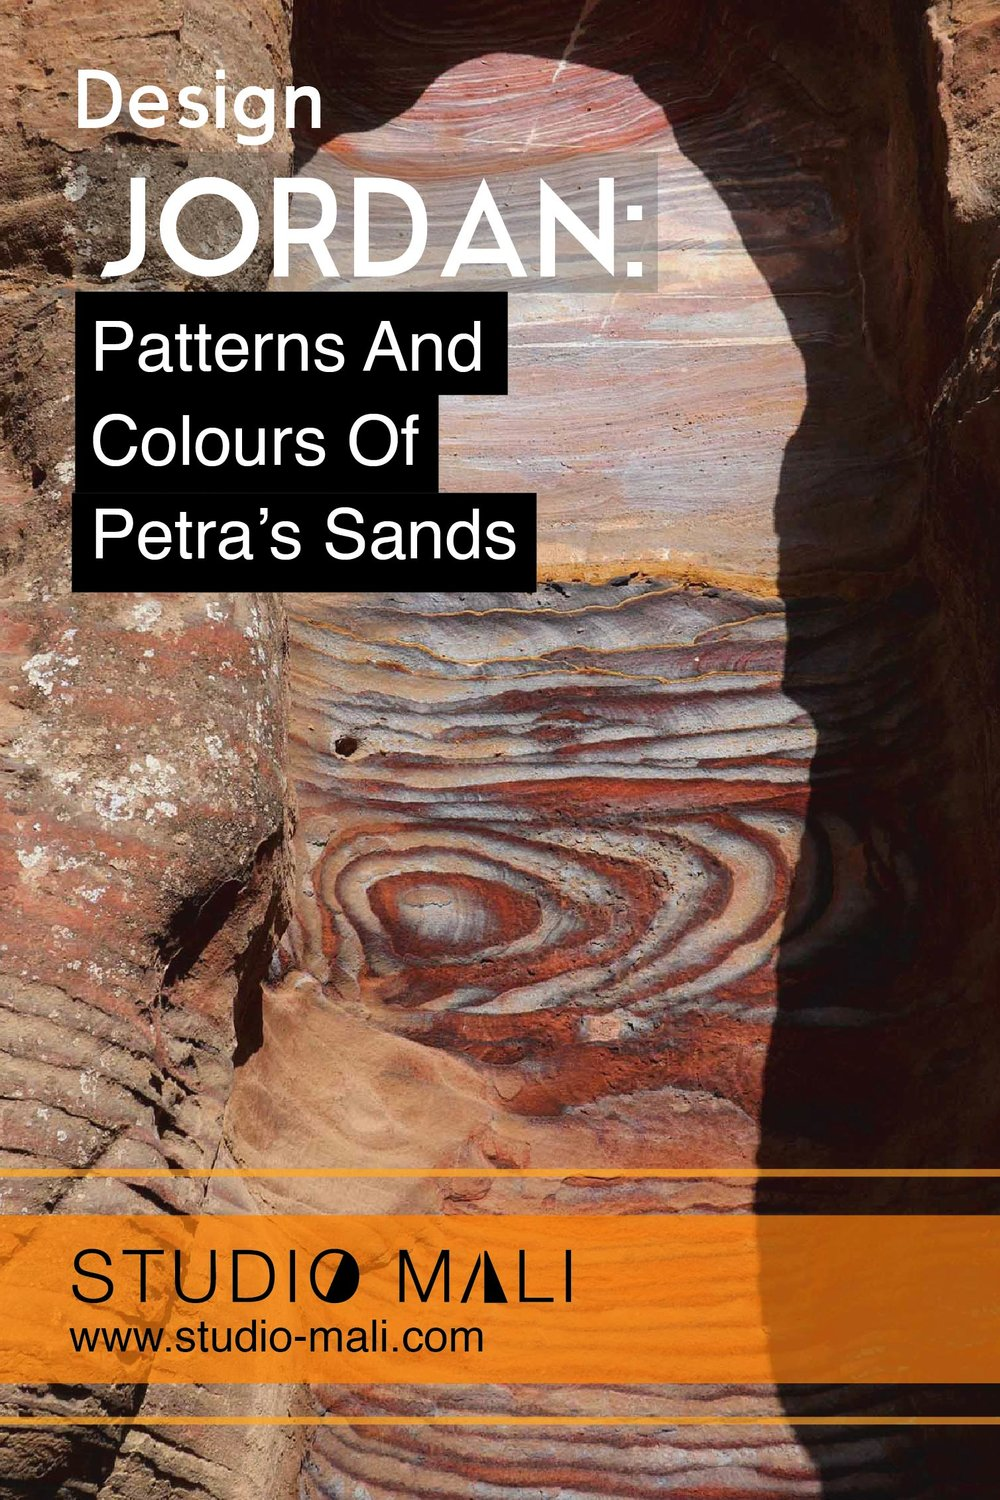 Jordan - Patterns And Colour In Petra's Sands, by Studio Mali